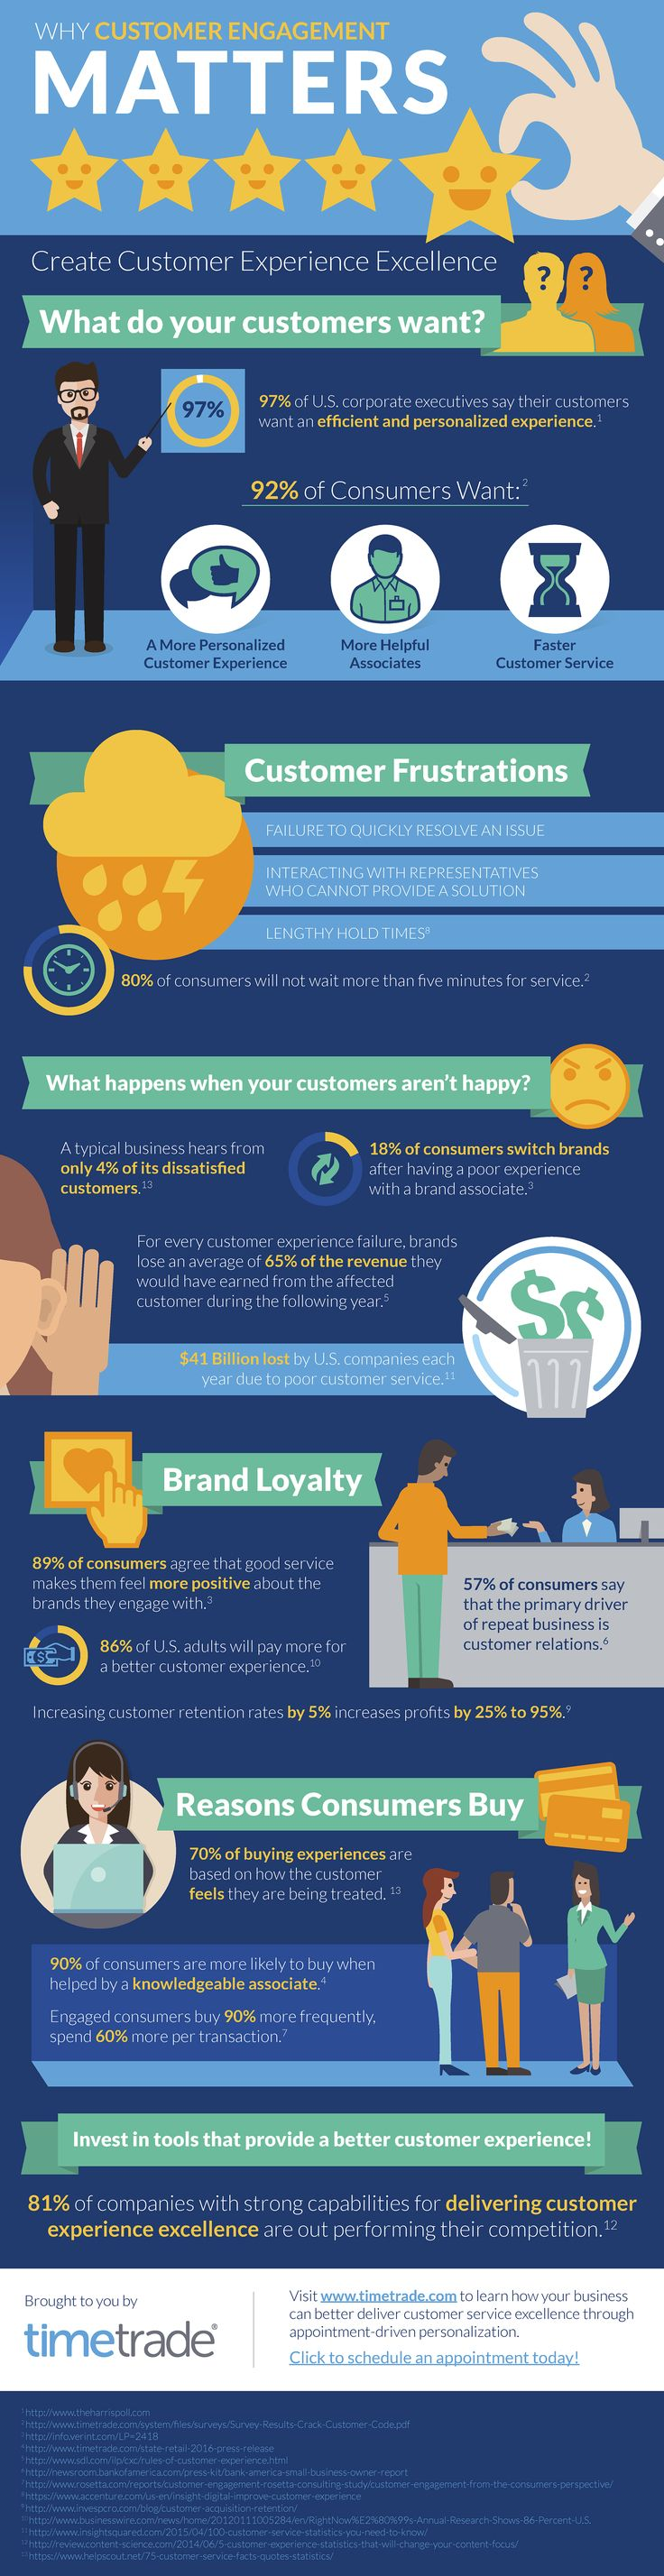 1136 best infographics images on pinterest infographic consumers want better customer service from companies check out this infographic detailing customers expectations and how delivering on their expectations fandeluxe Choice Image